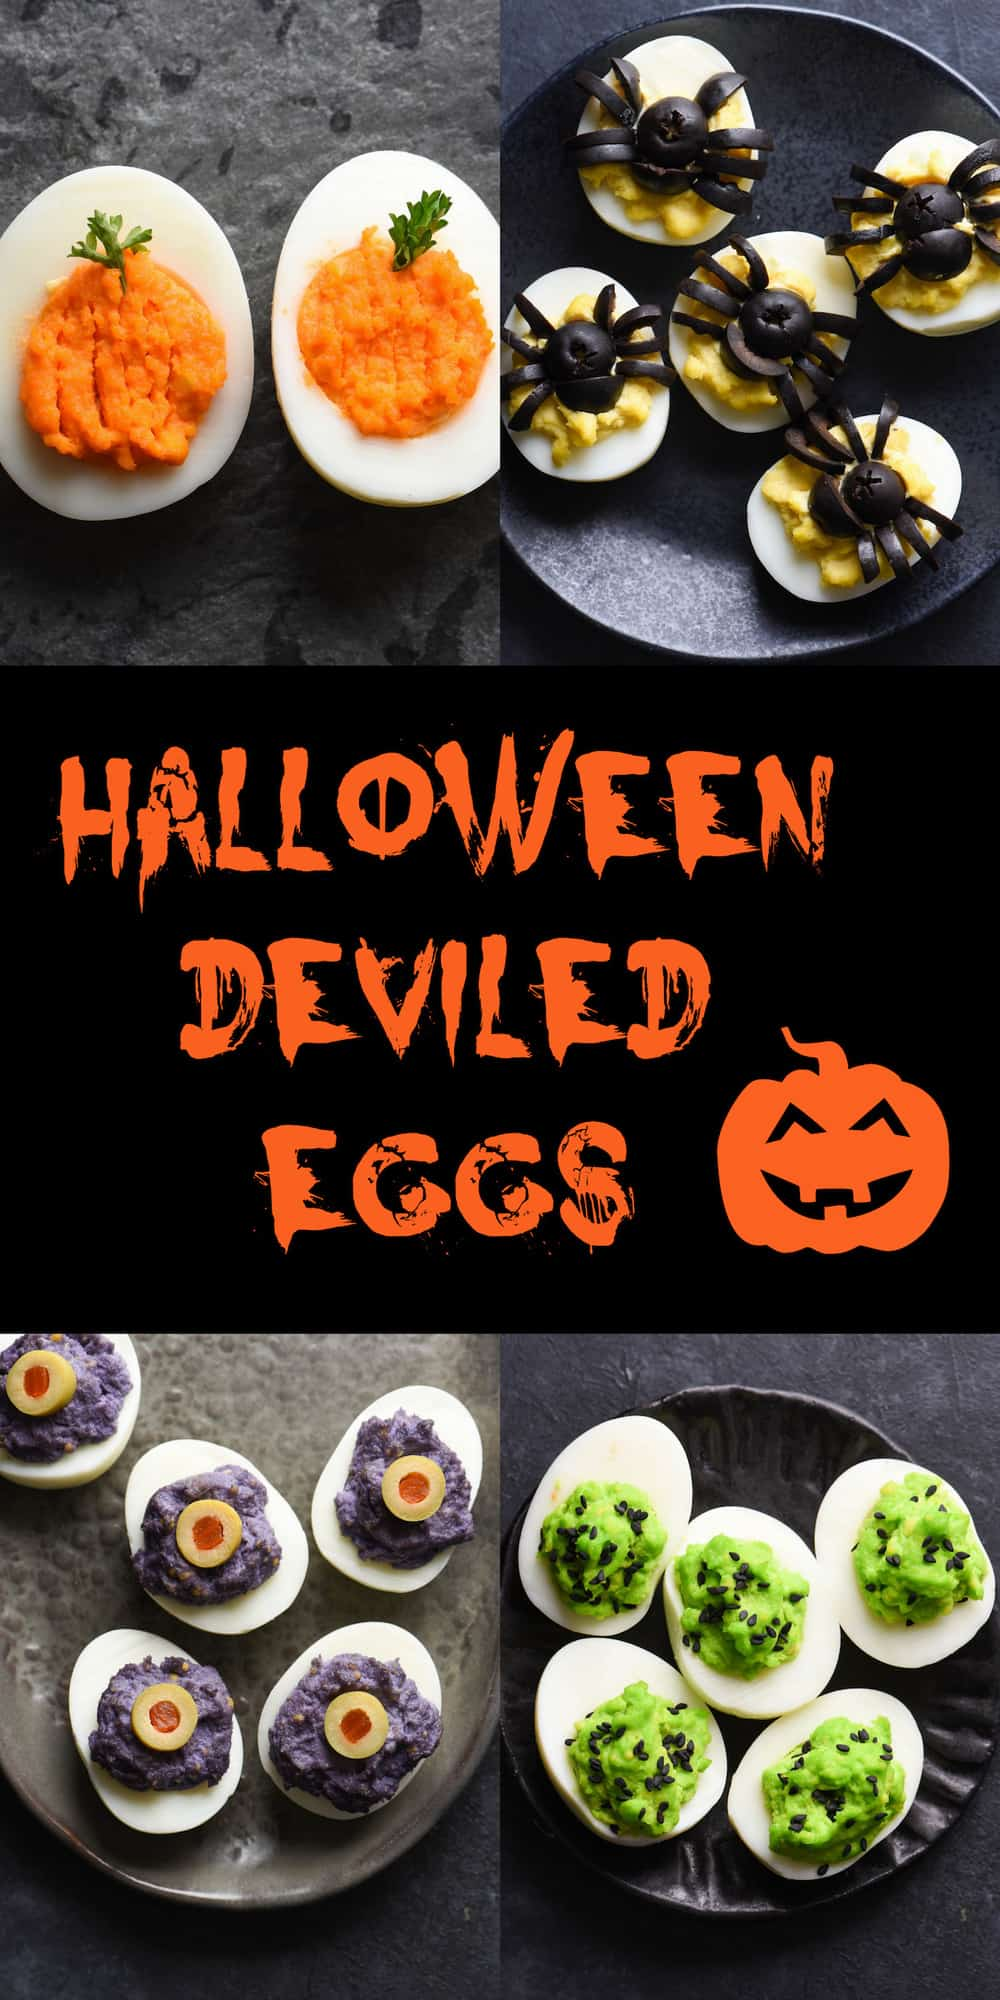 Collage of deviled eggs decorated for Halloween with overlay: HALLOWEEN DEVILED EGGS